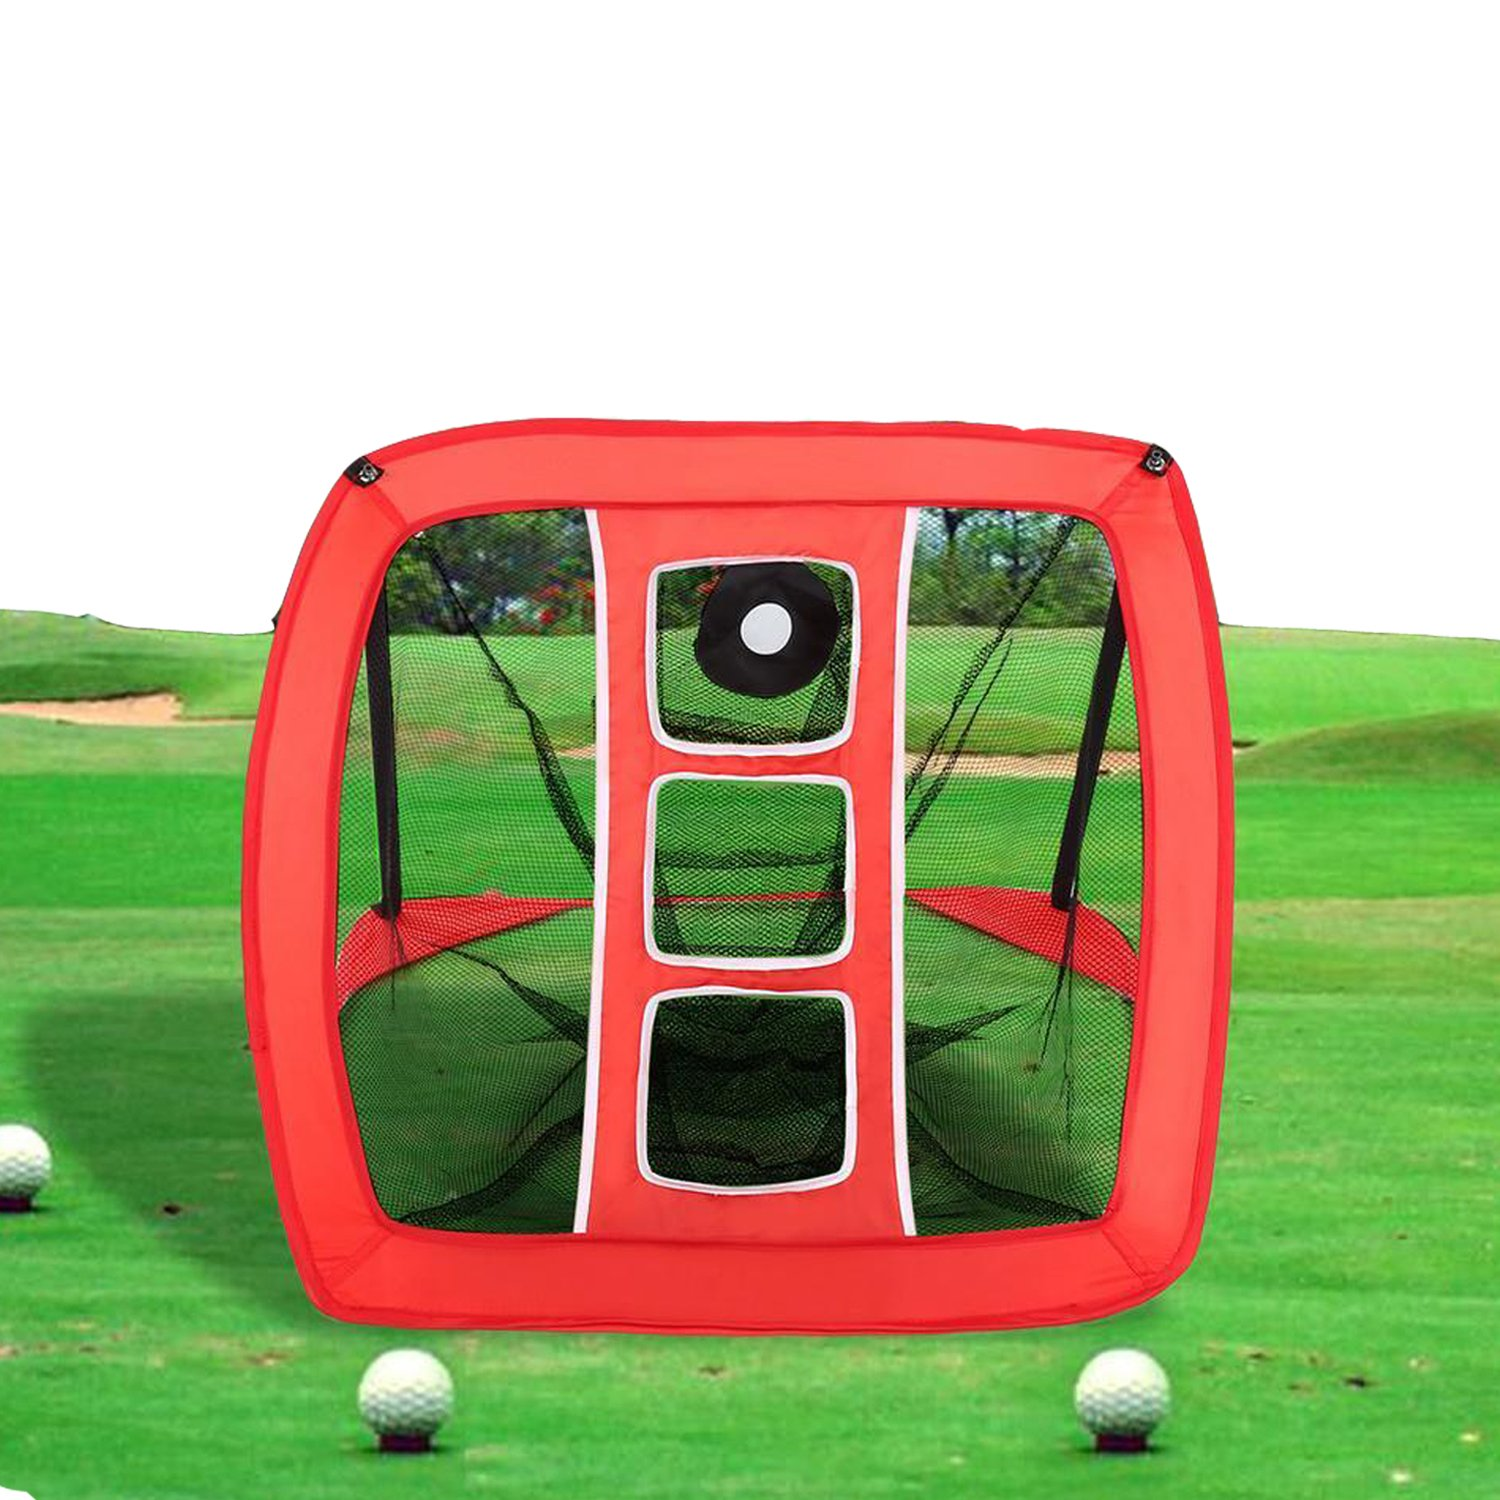 Dtemple Folding Golf Training Net With Range Marker Target Easy to Pop-Up Chipping Net with Carry Bag (US Stock)